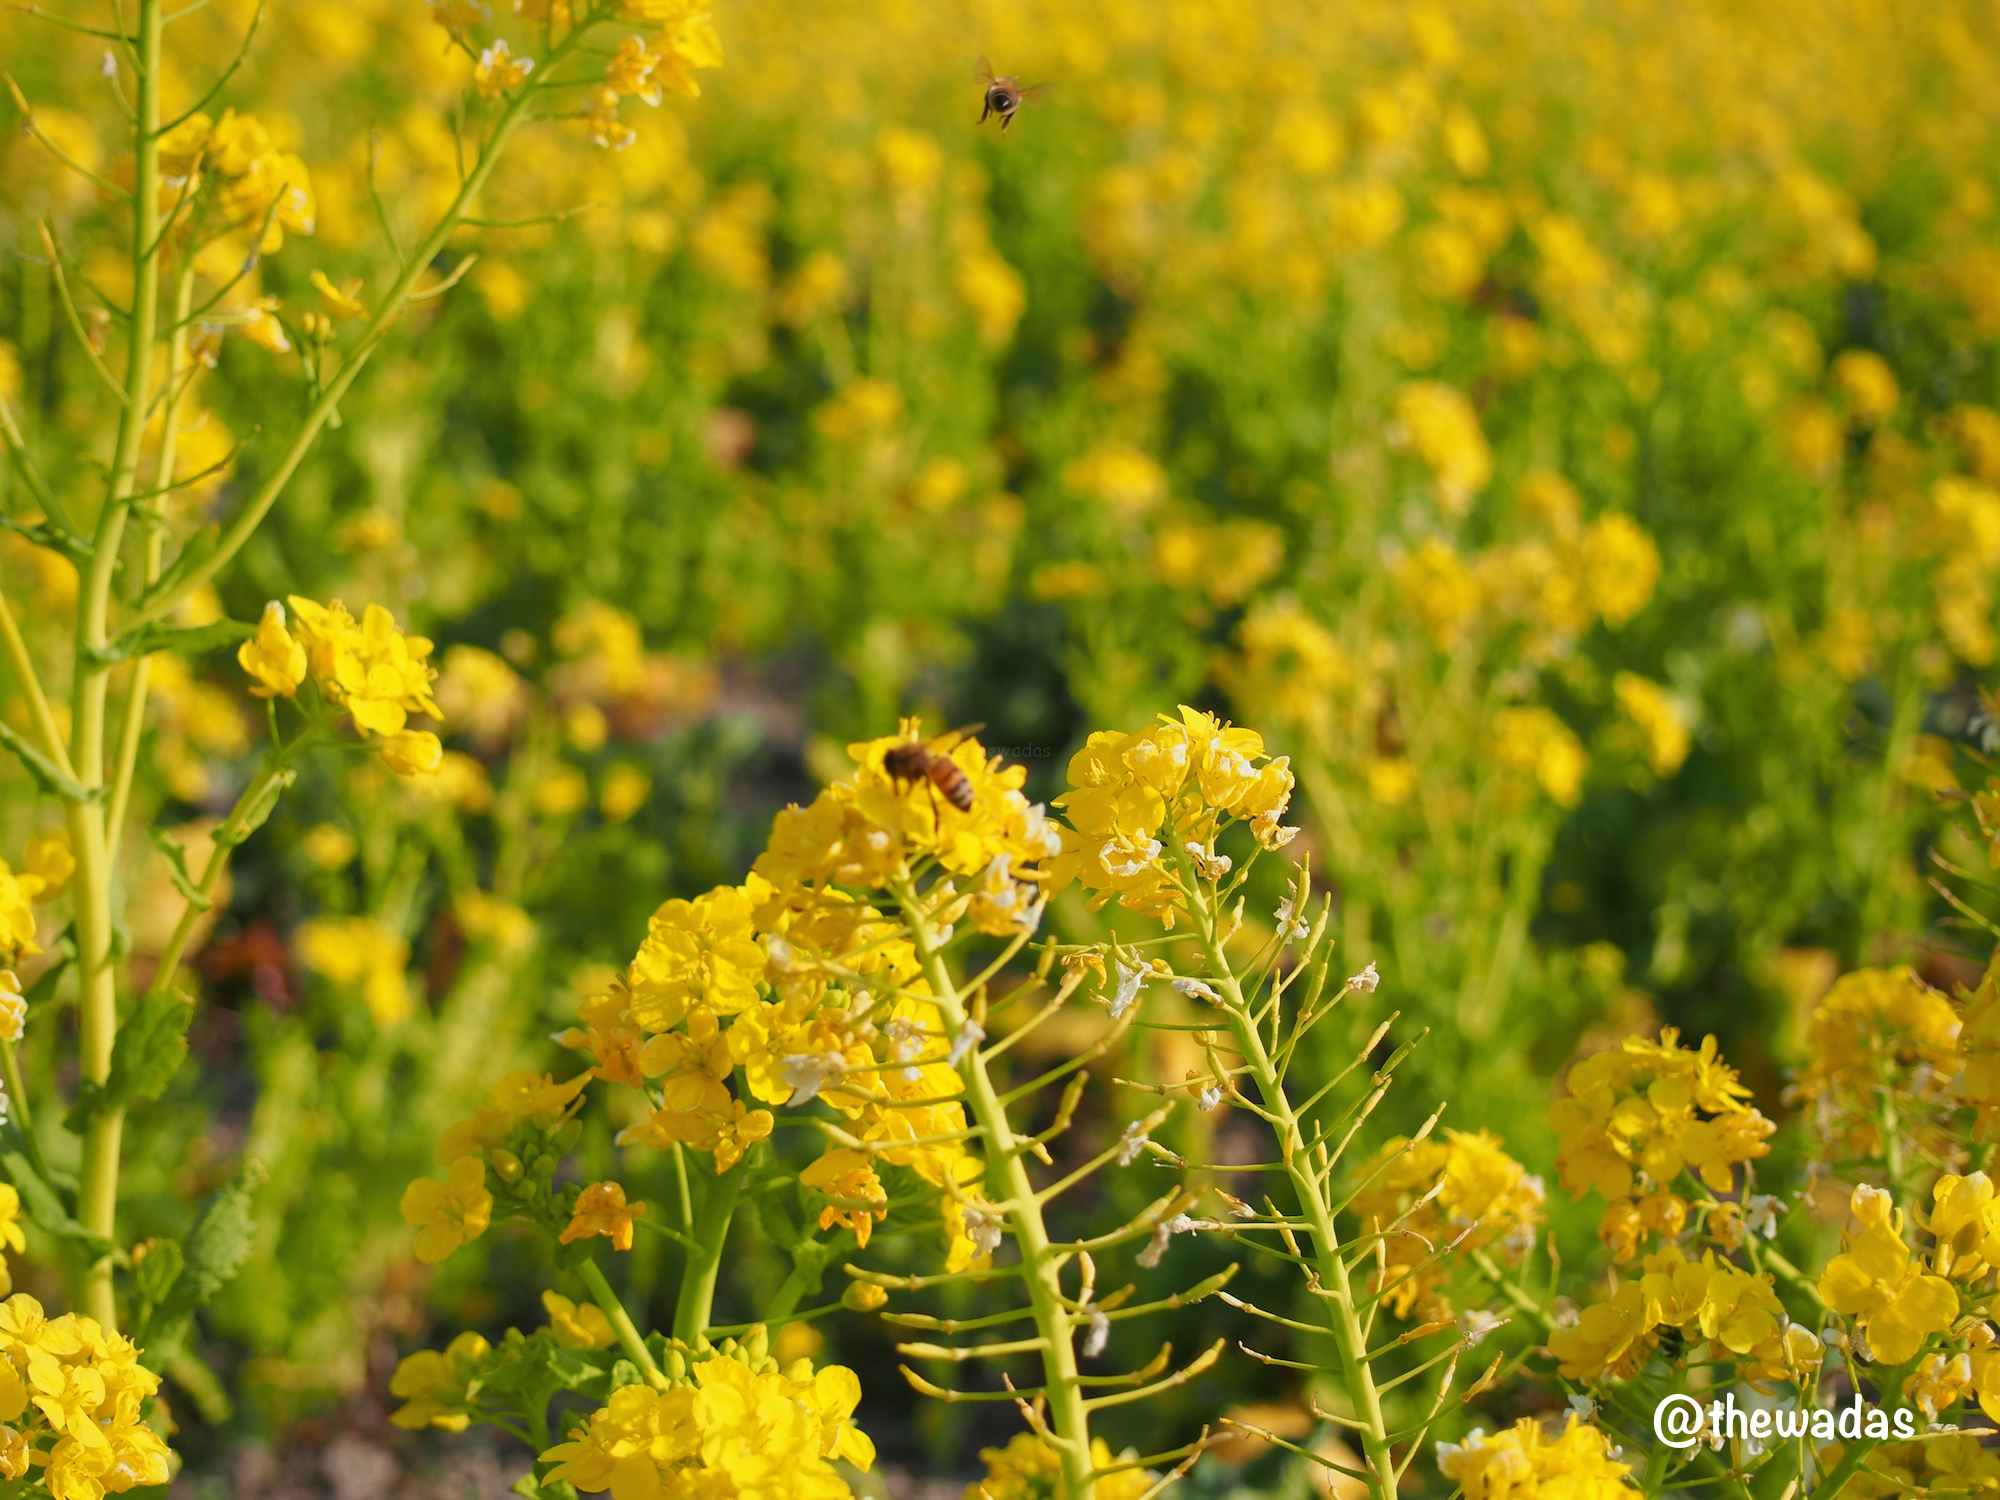 Kasaoka Bayfarm: Nanohana rapeseed flower field, closeup with bees